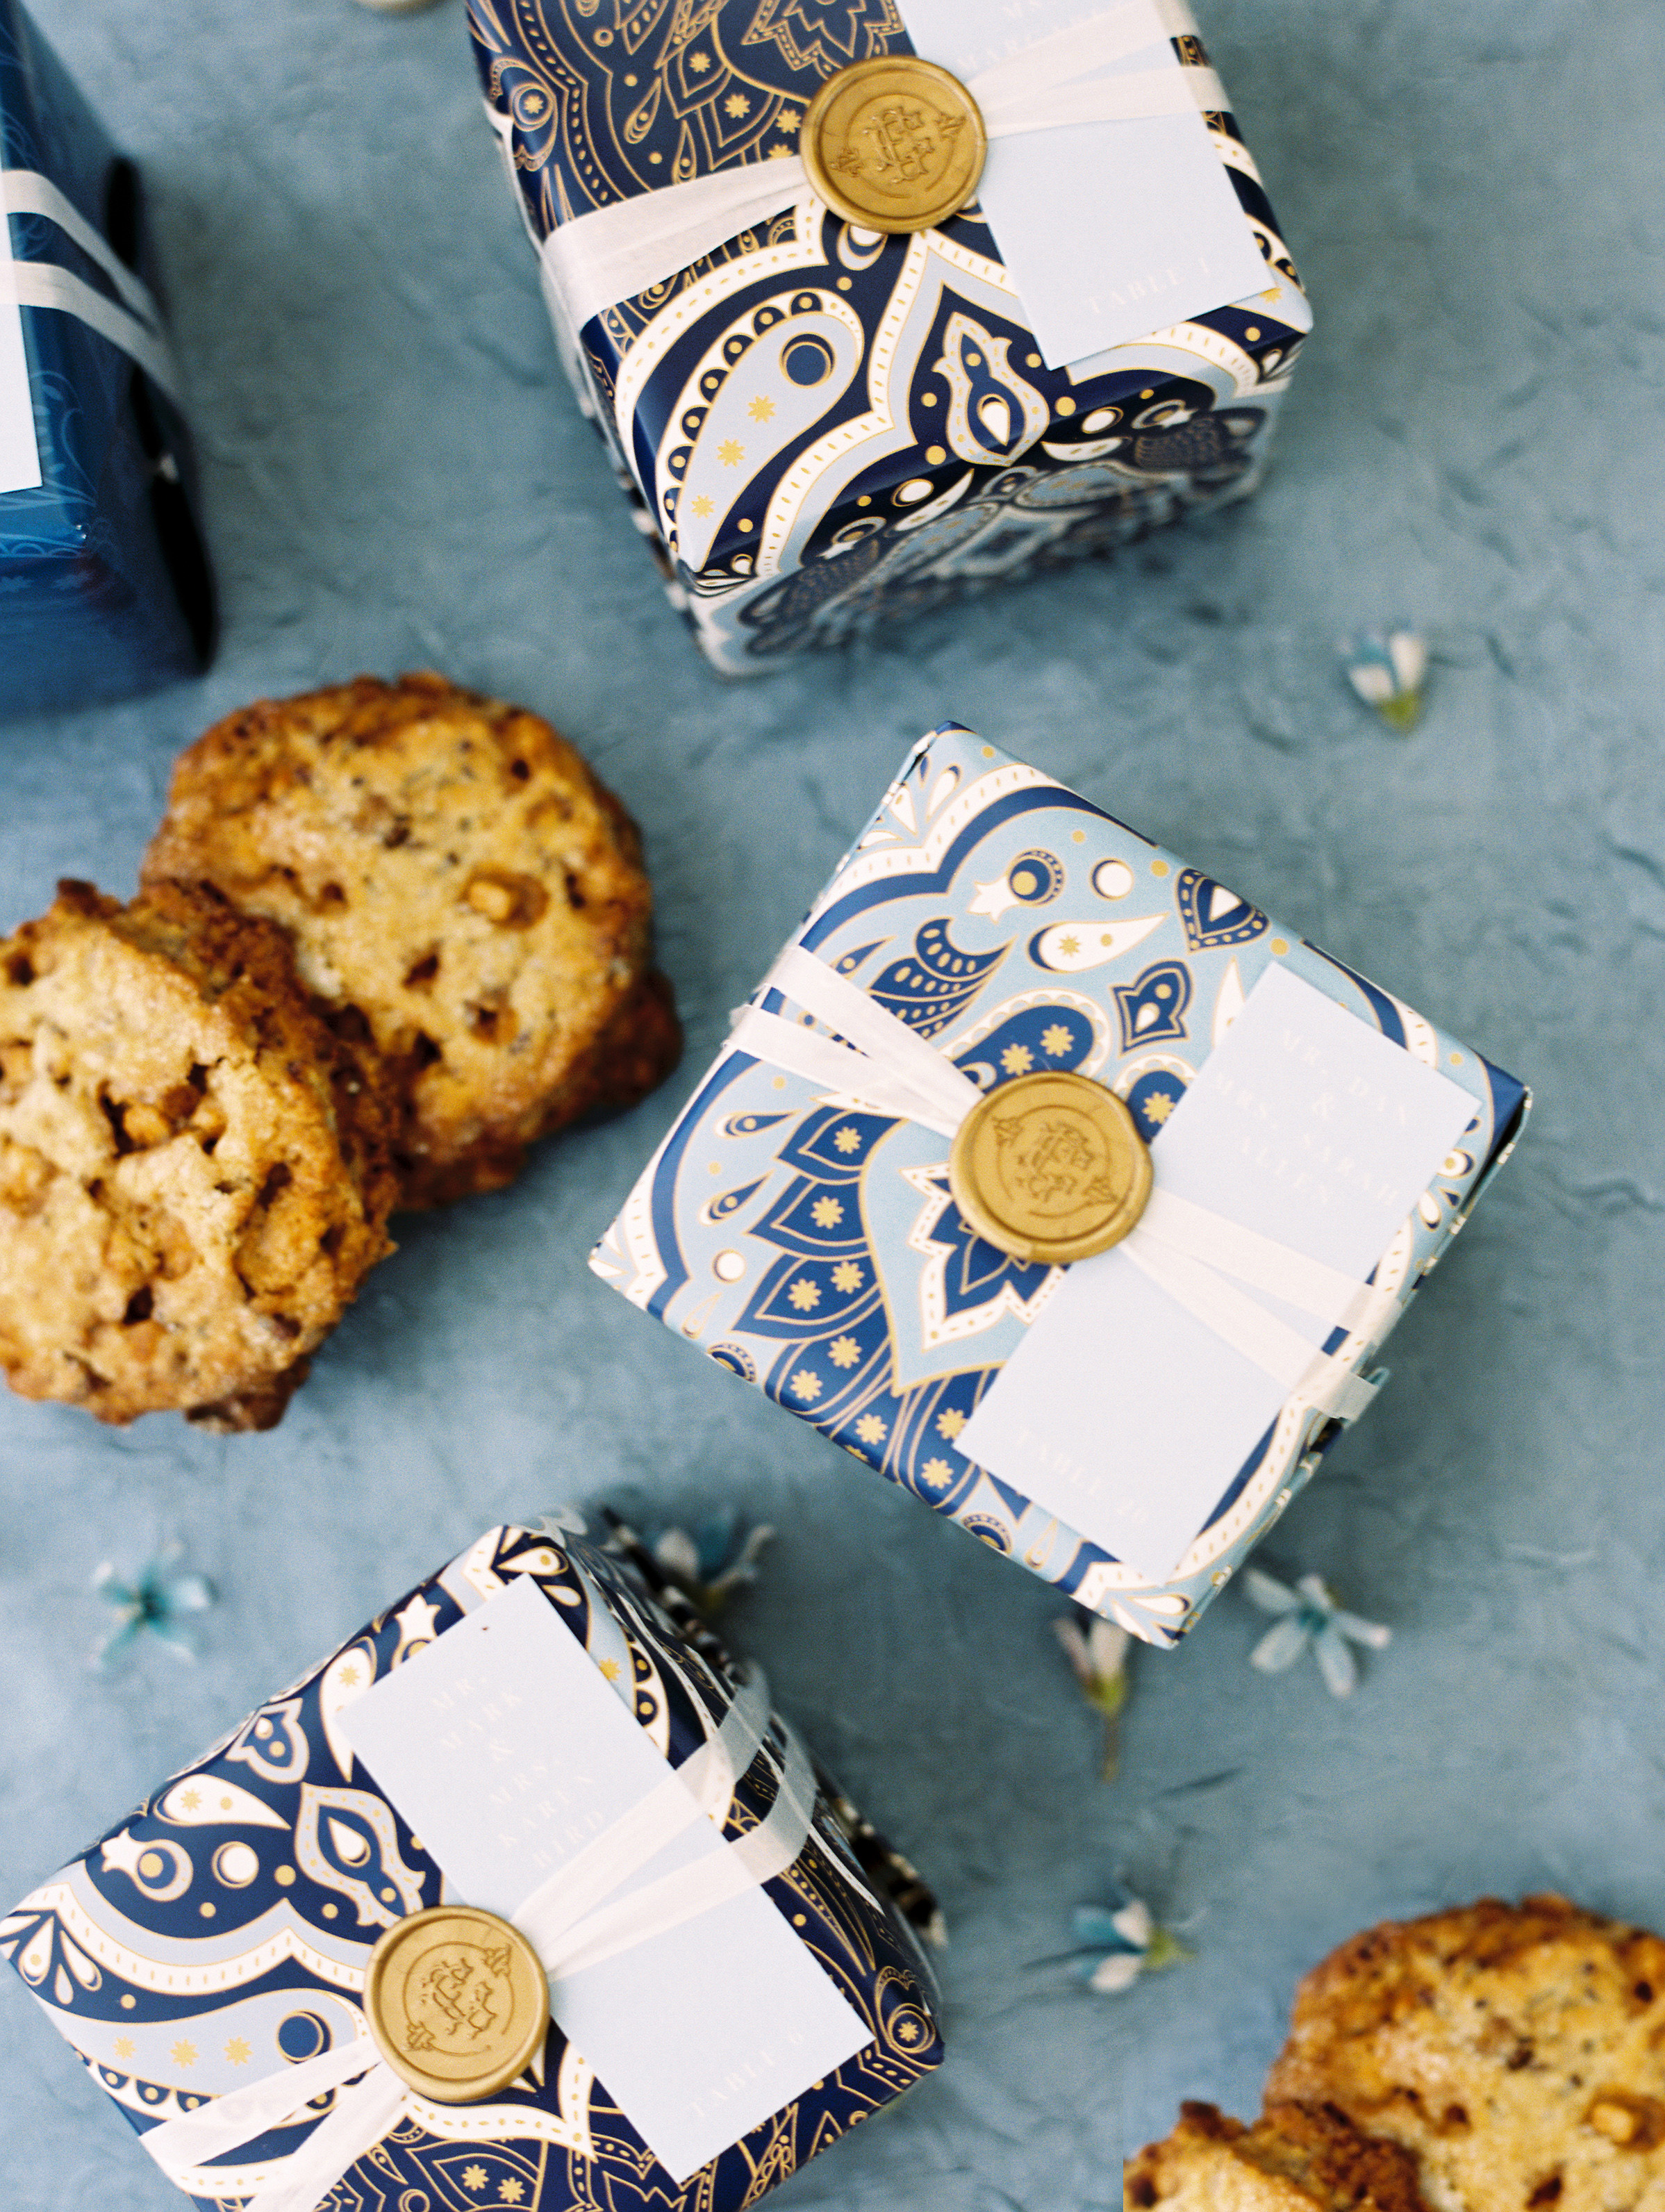 Cookie Wedding Favors That Will Help End Your Night on a Sweet Note